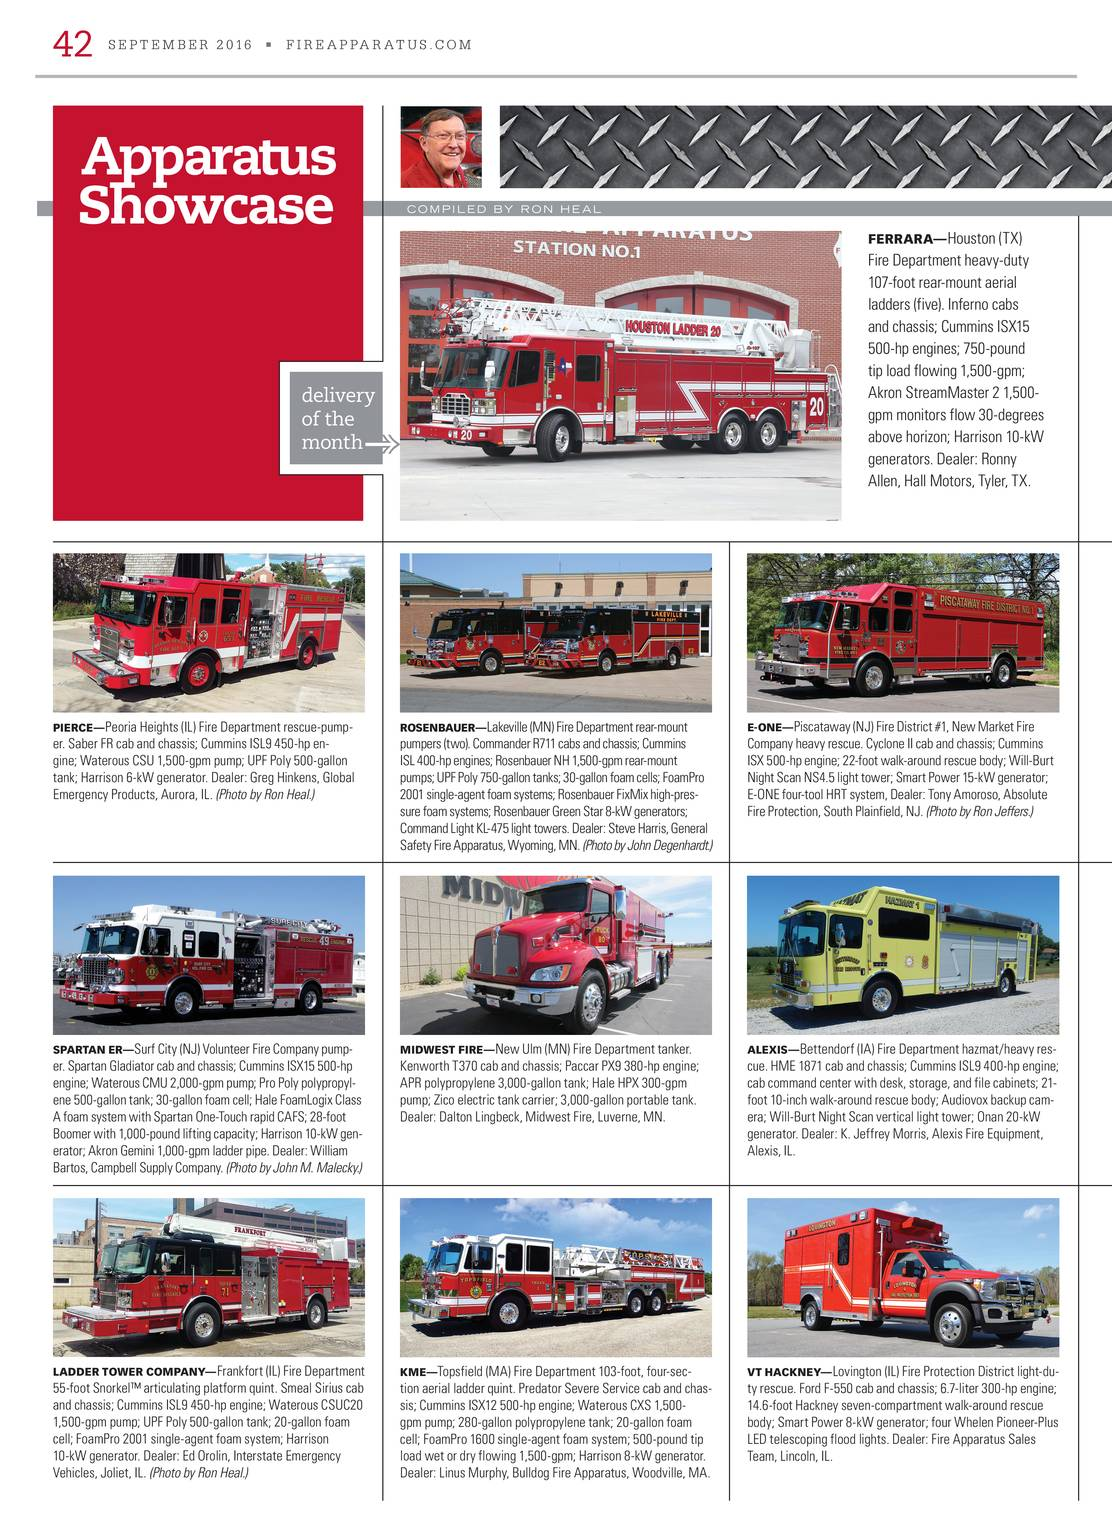 Fire Apparatus Magazine - September 2016 - page 42